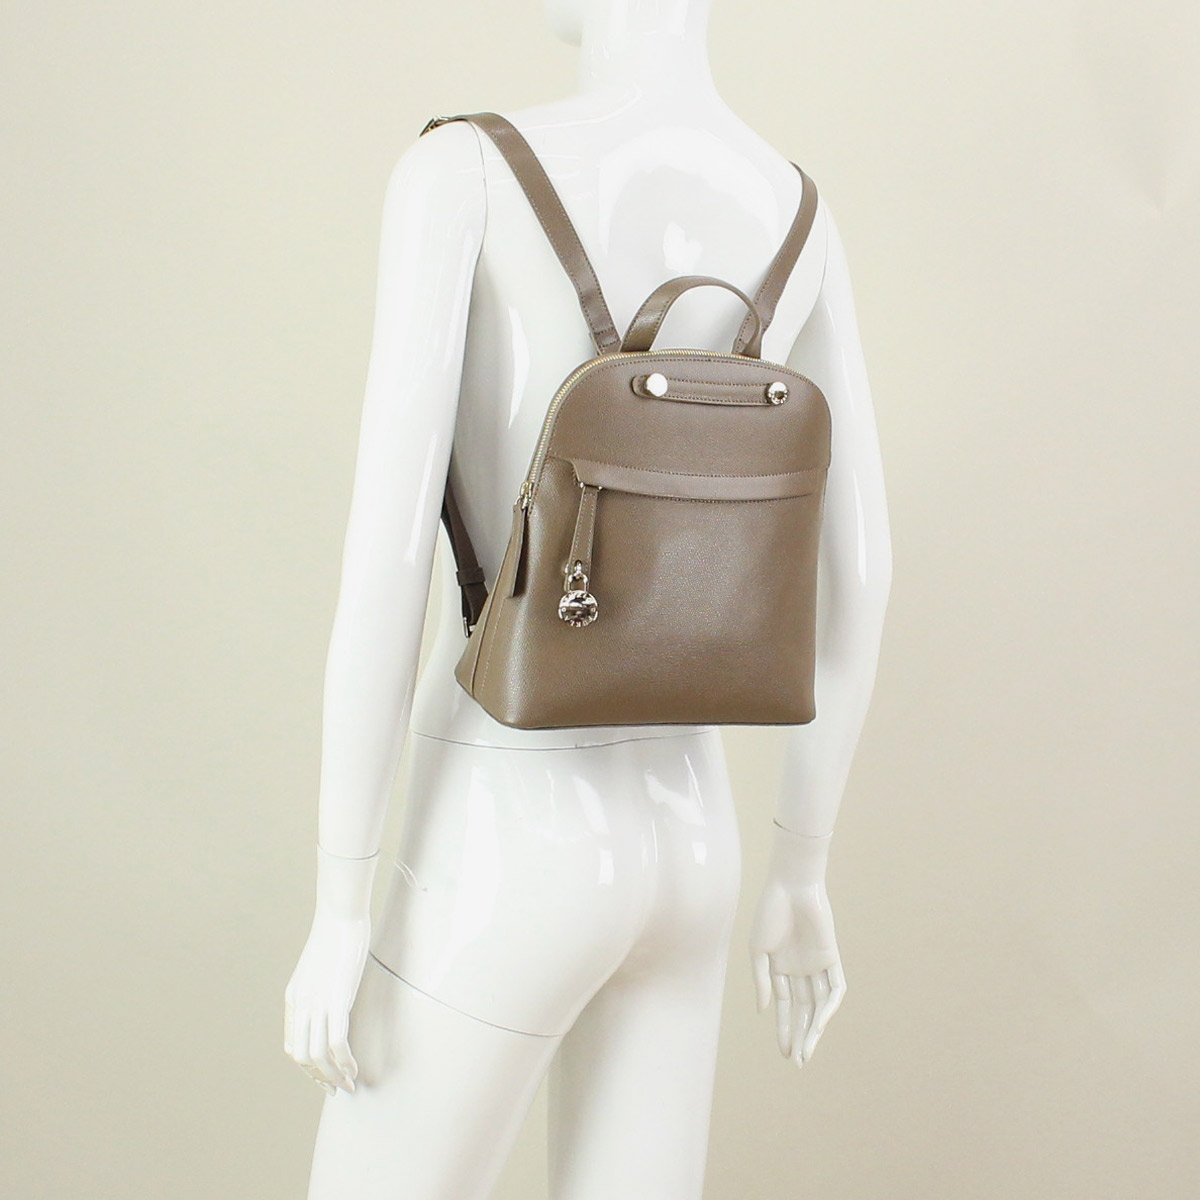 FURLA (FURLA) PIPER Luc BHT7 835563-ARE-DAI COLOR DAINO Brown( taxfree/send by EMS/authentic/A brand new item )